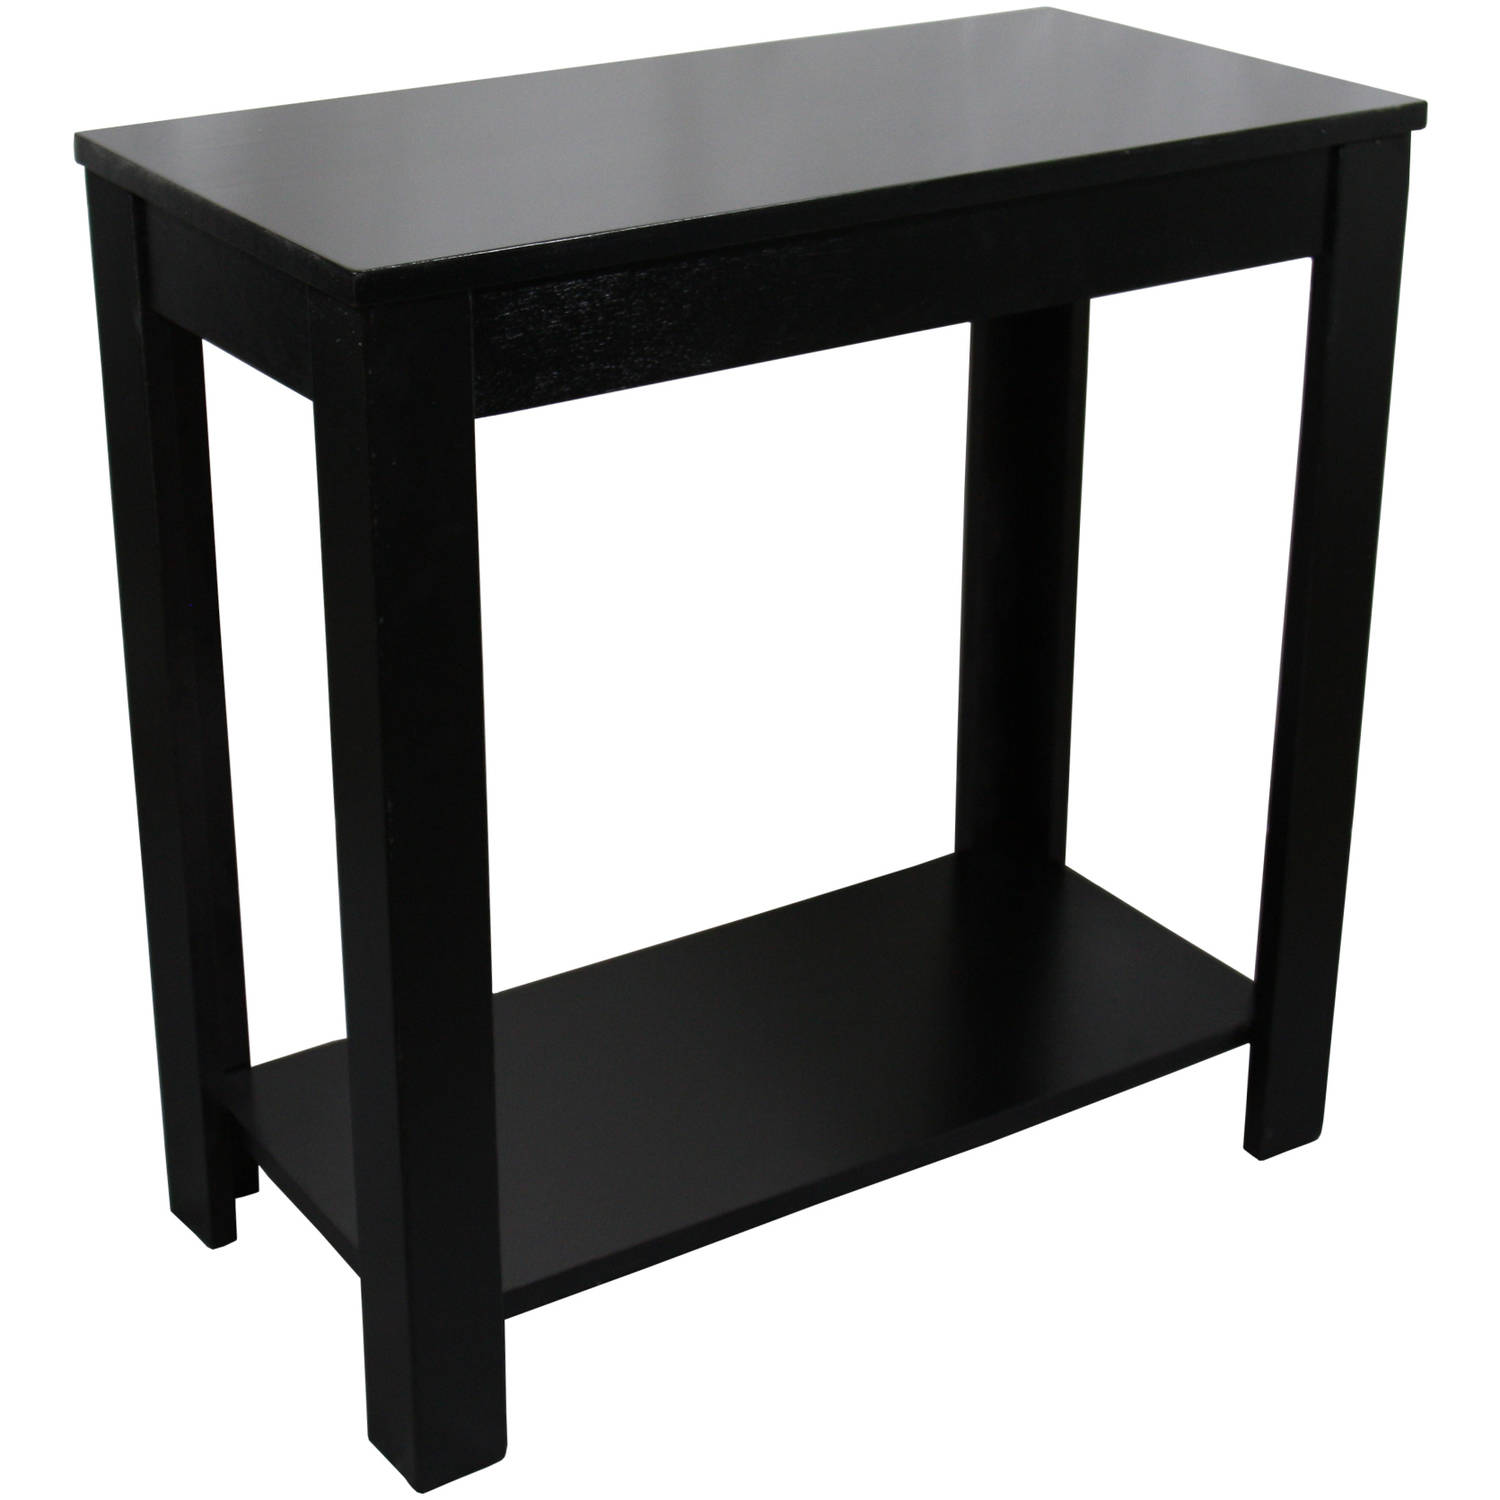 chair side tables with storage norstar office parts 24 black table walmart com